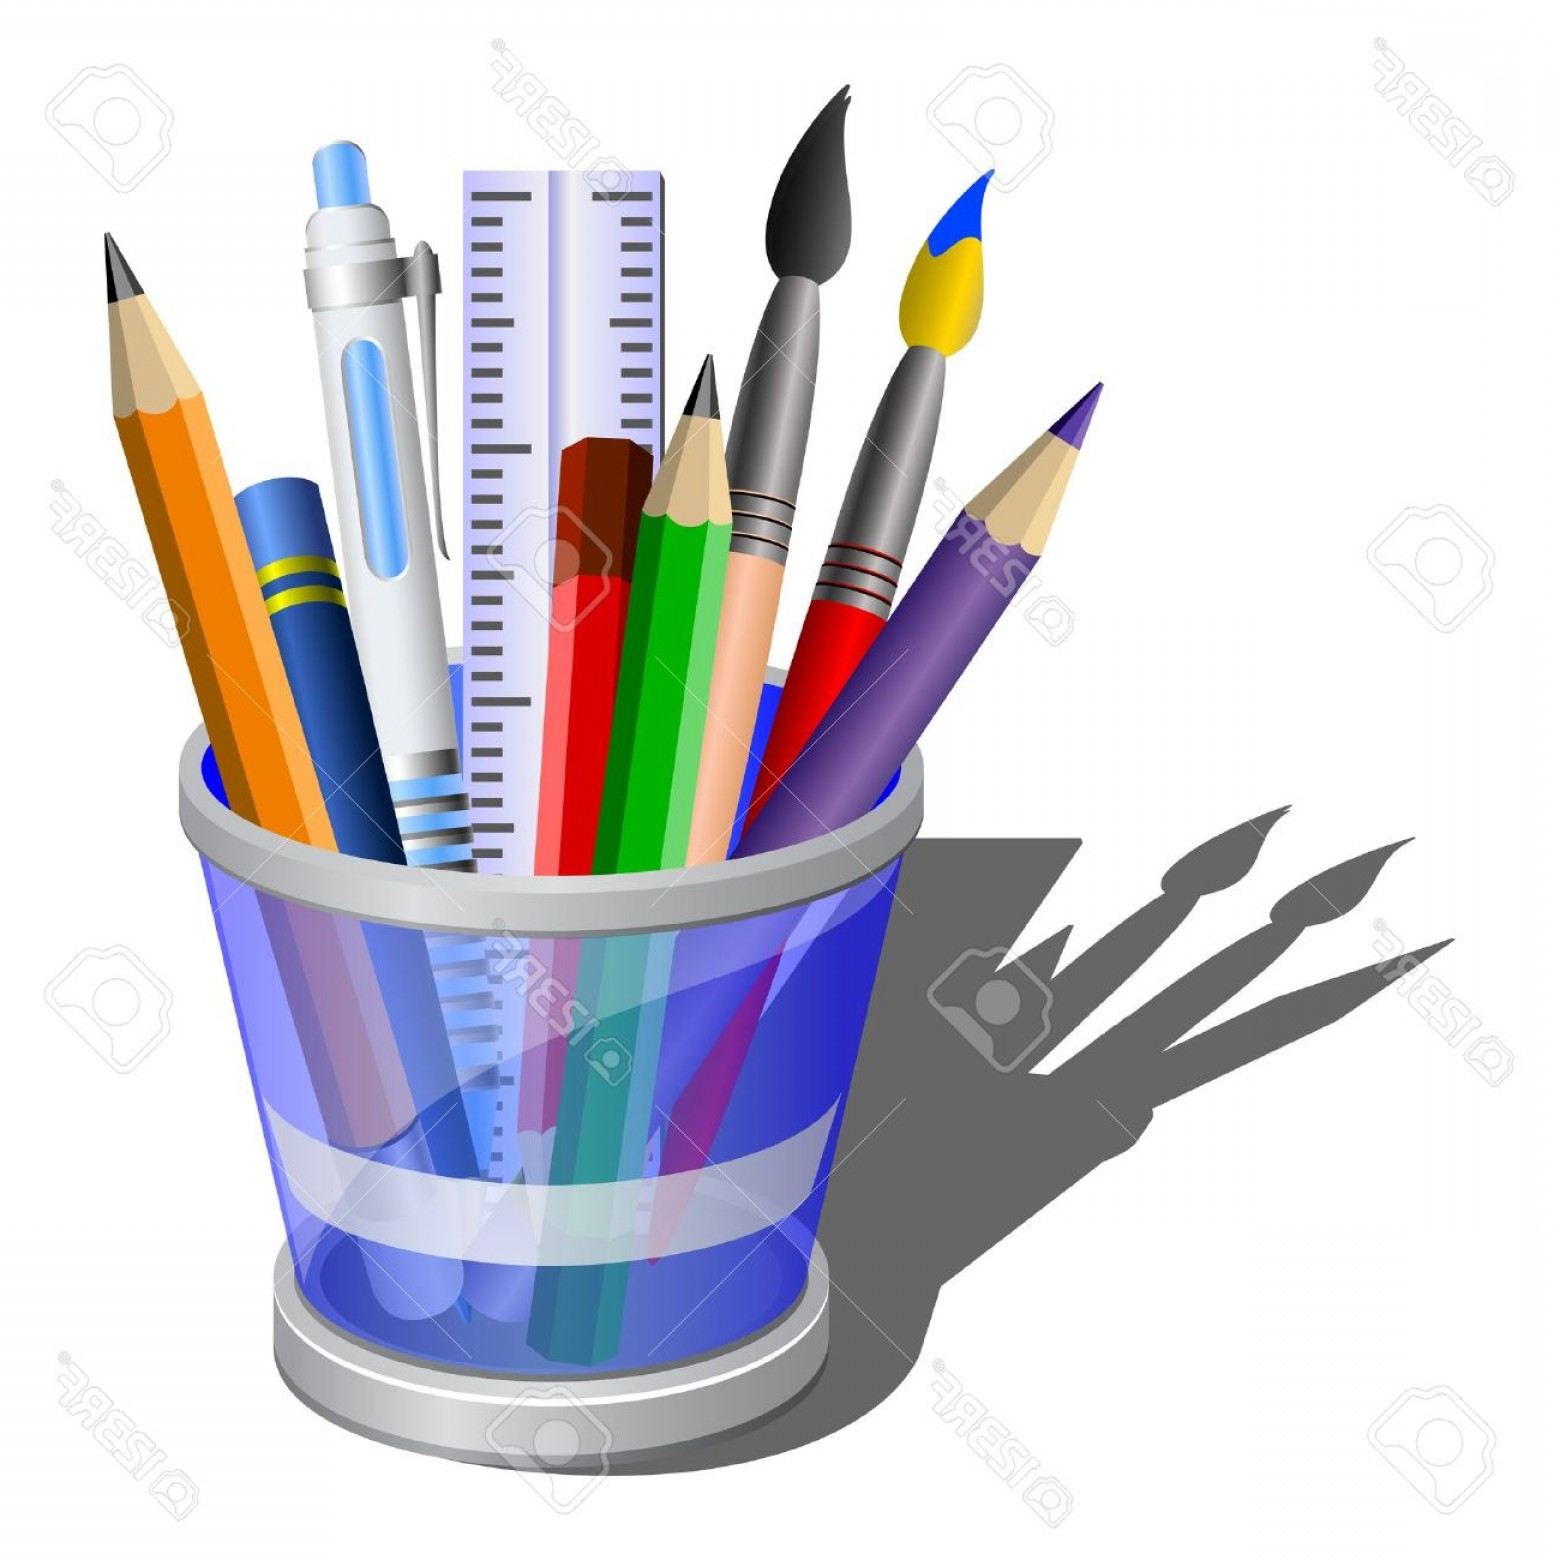 Vector Pencil Holder: Photostylized Icon Of Blue Pencil Holder With Acessories Isometric View